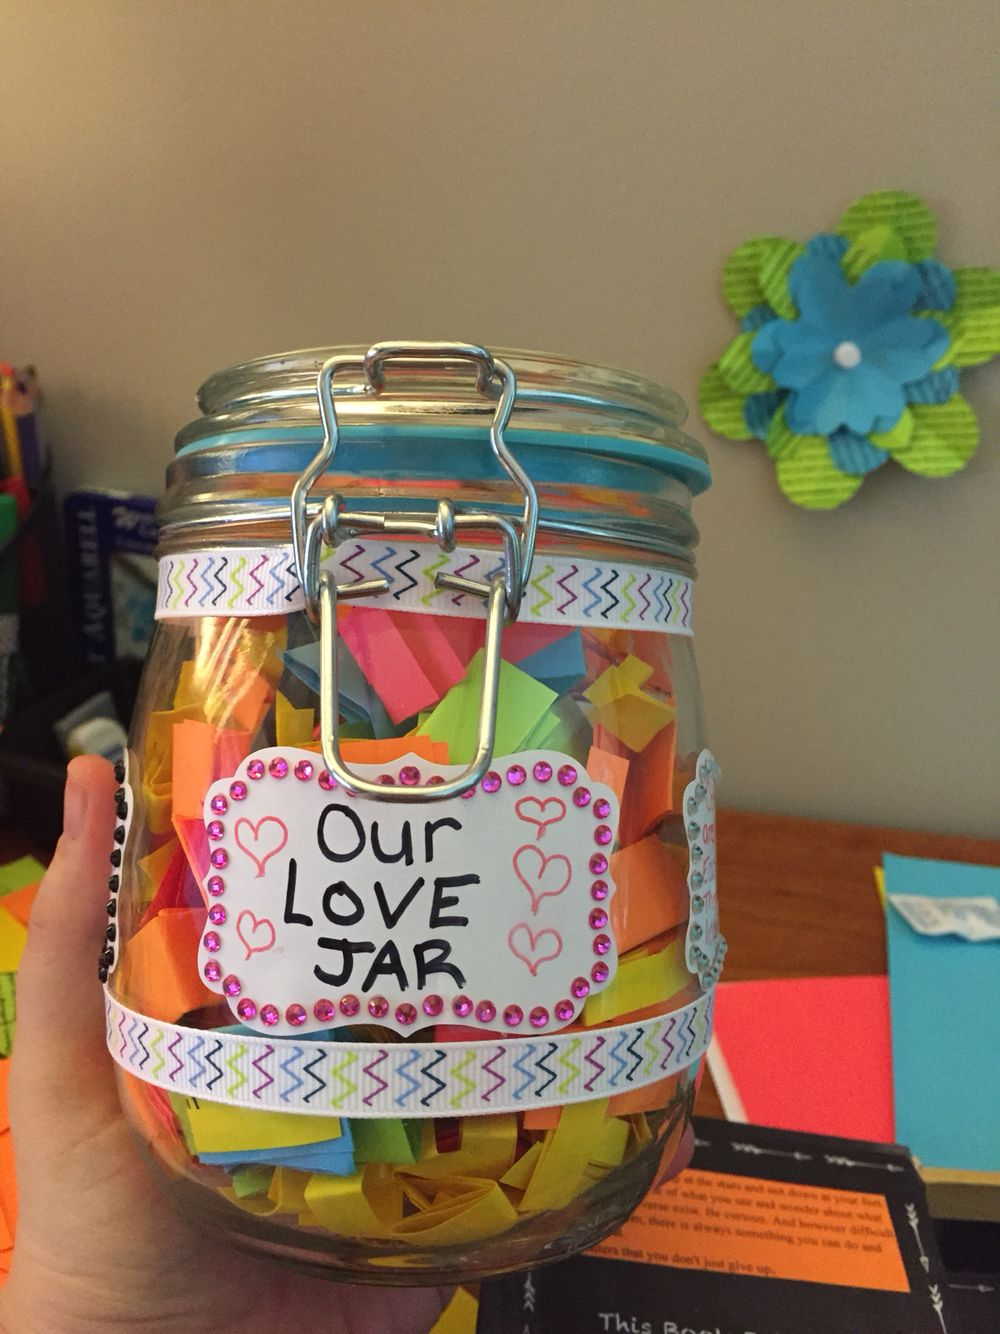 Our love jar! Filled with reasons I love you Date ideas Memories Quotes Lyrics